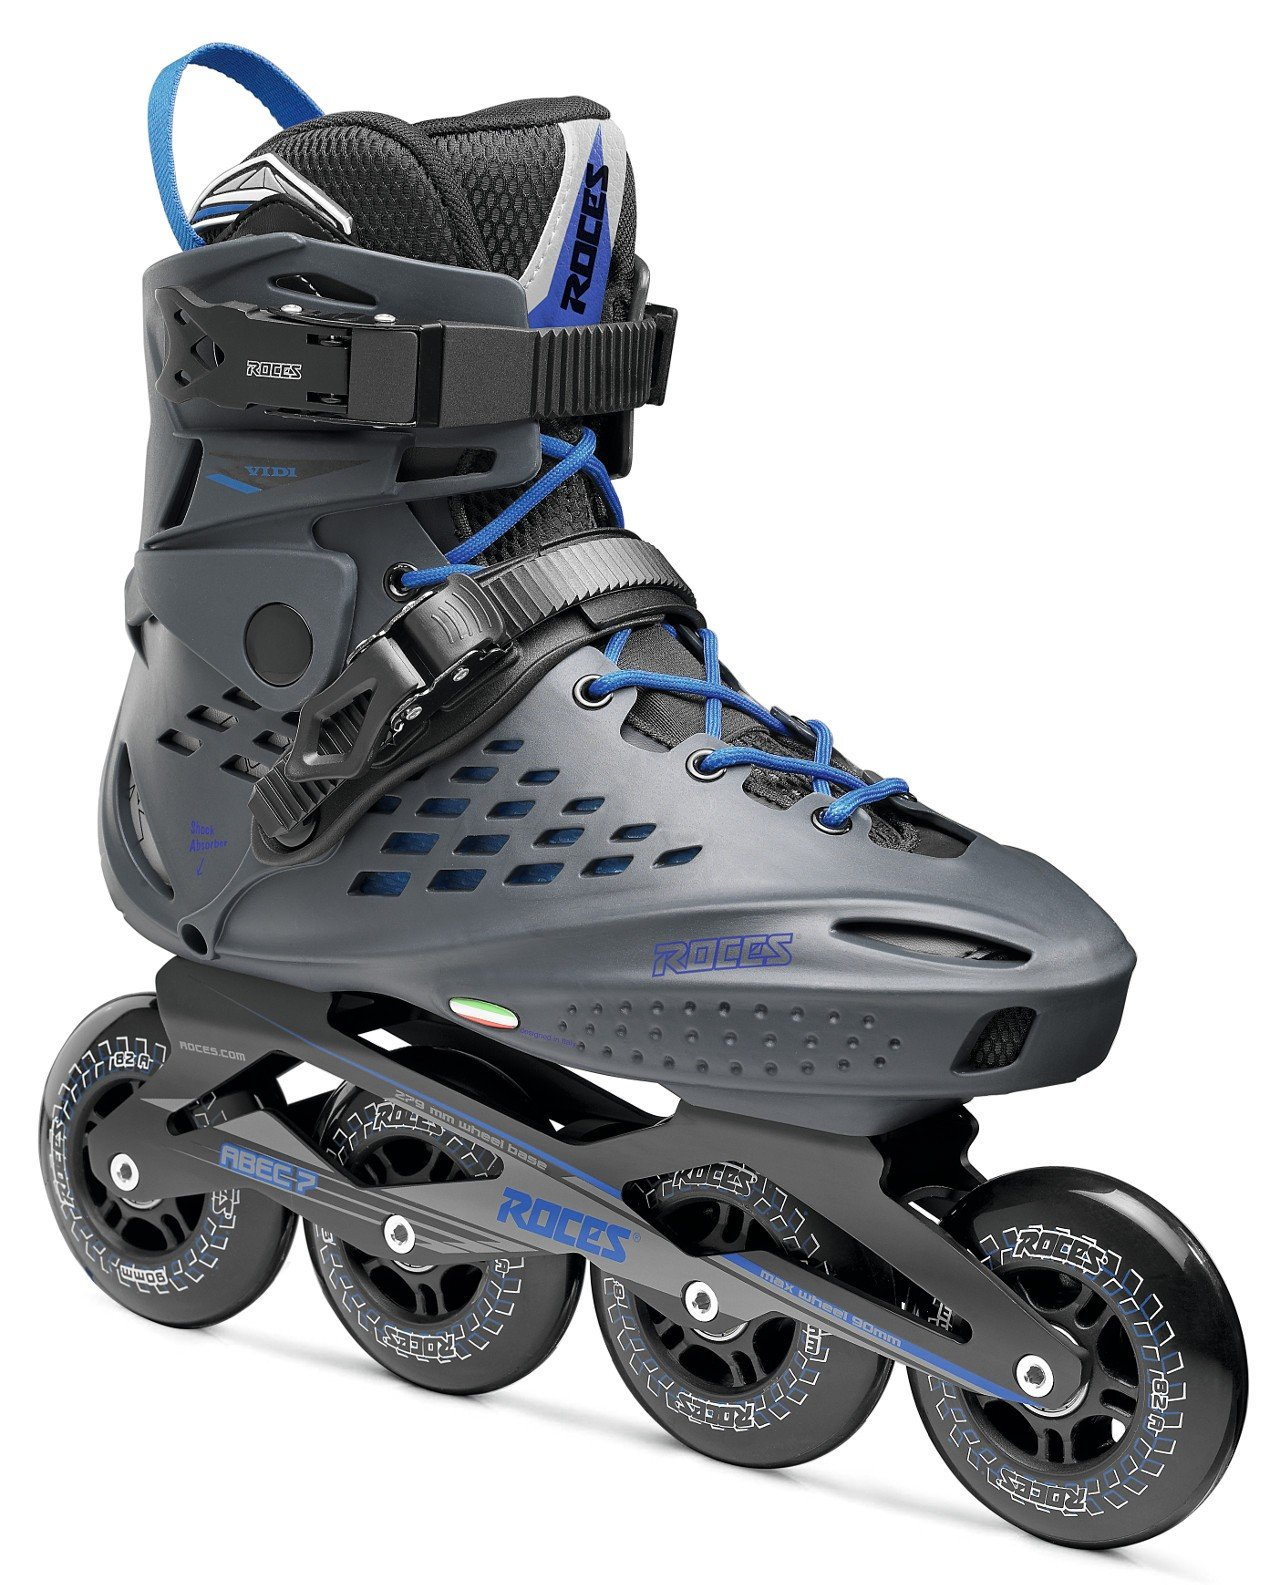 Roces 400470 Men's Model Vidi Fitness Inline Skate, US 12, Charcoal/Strong Blue